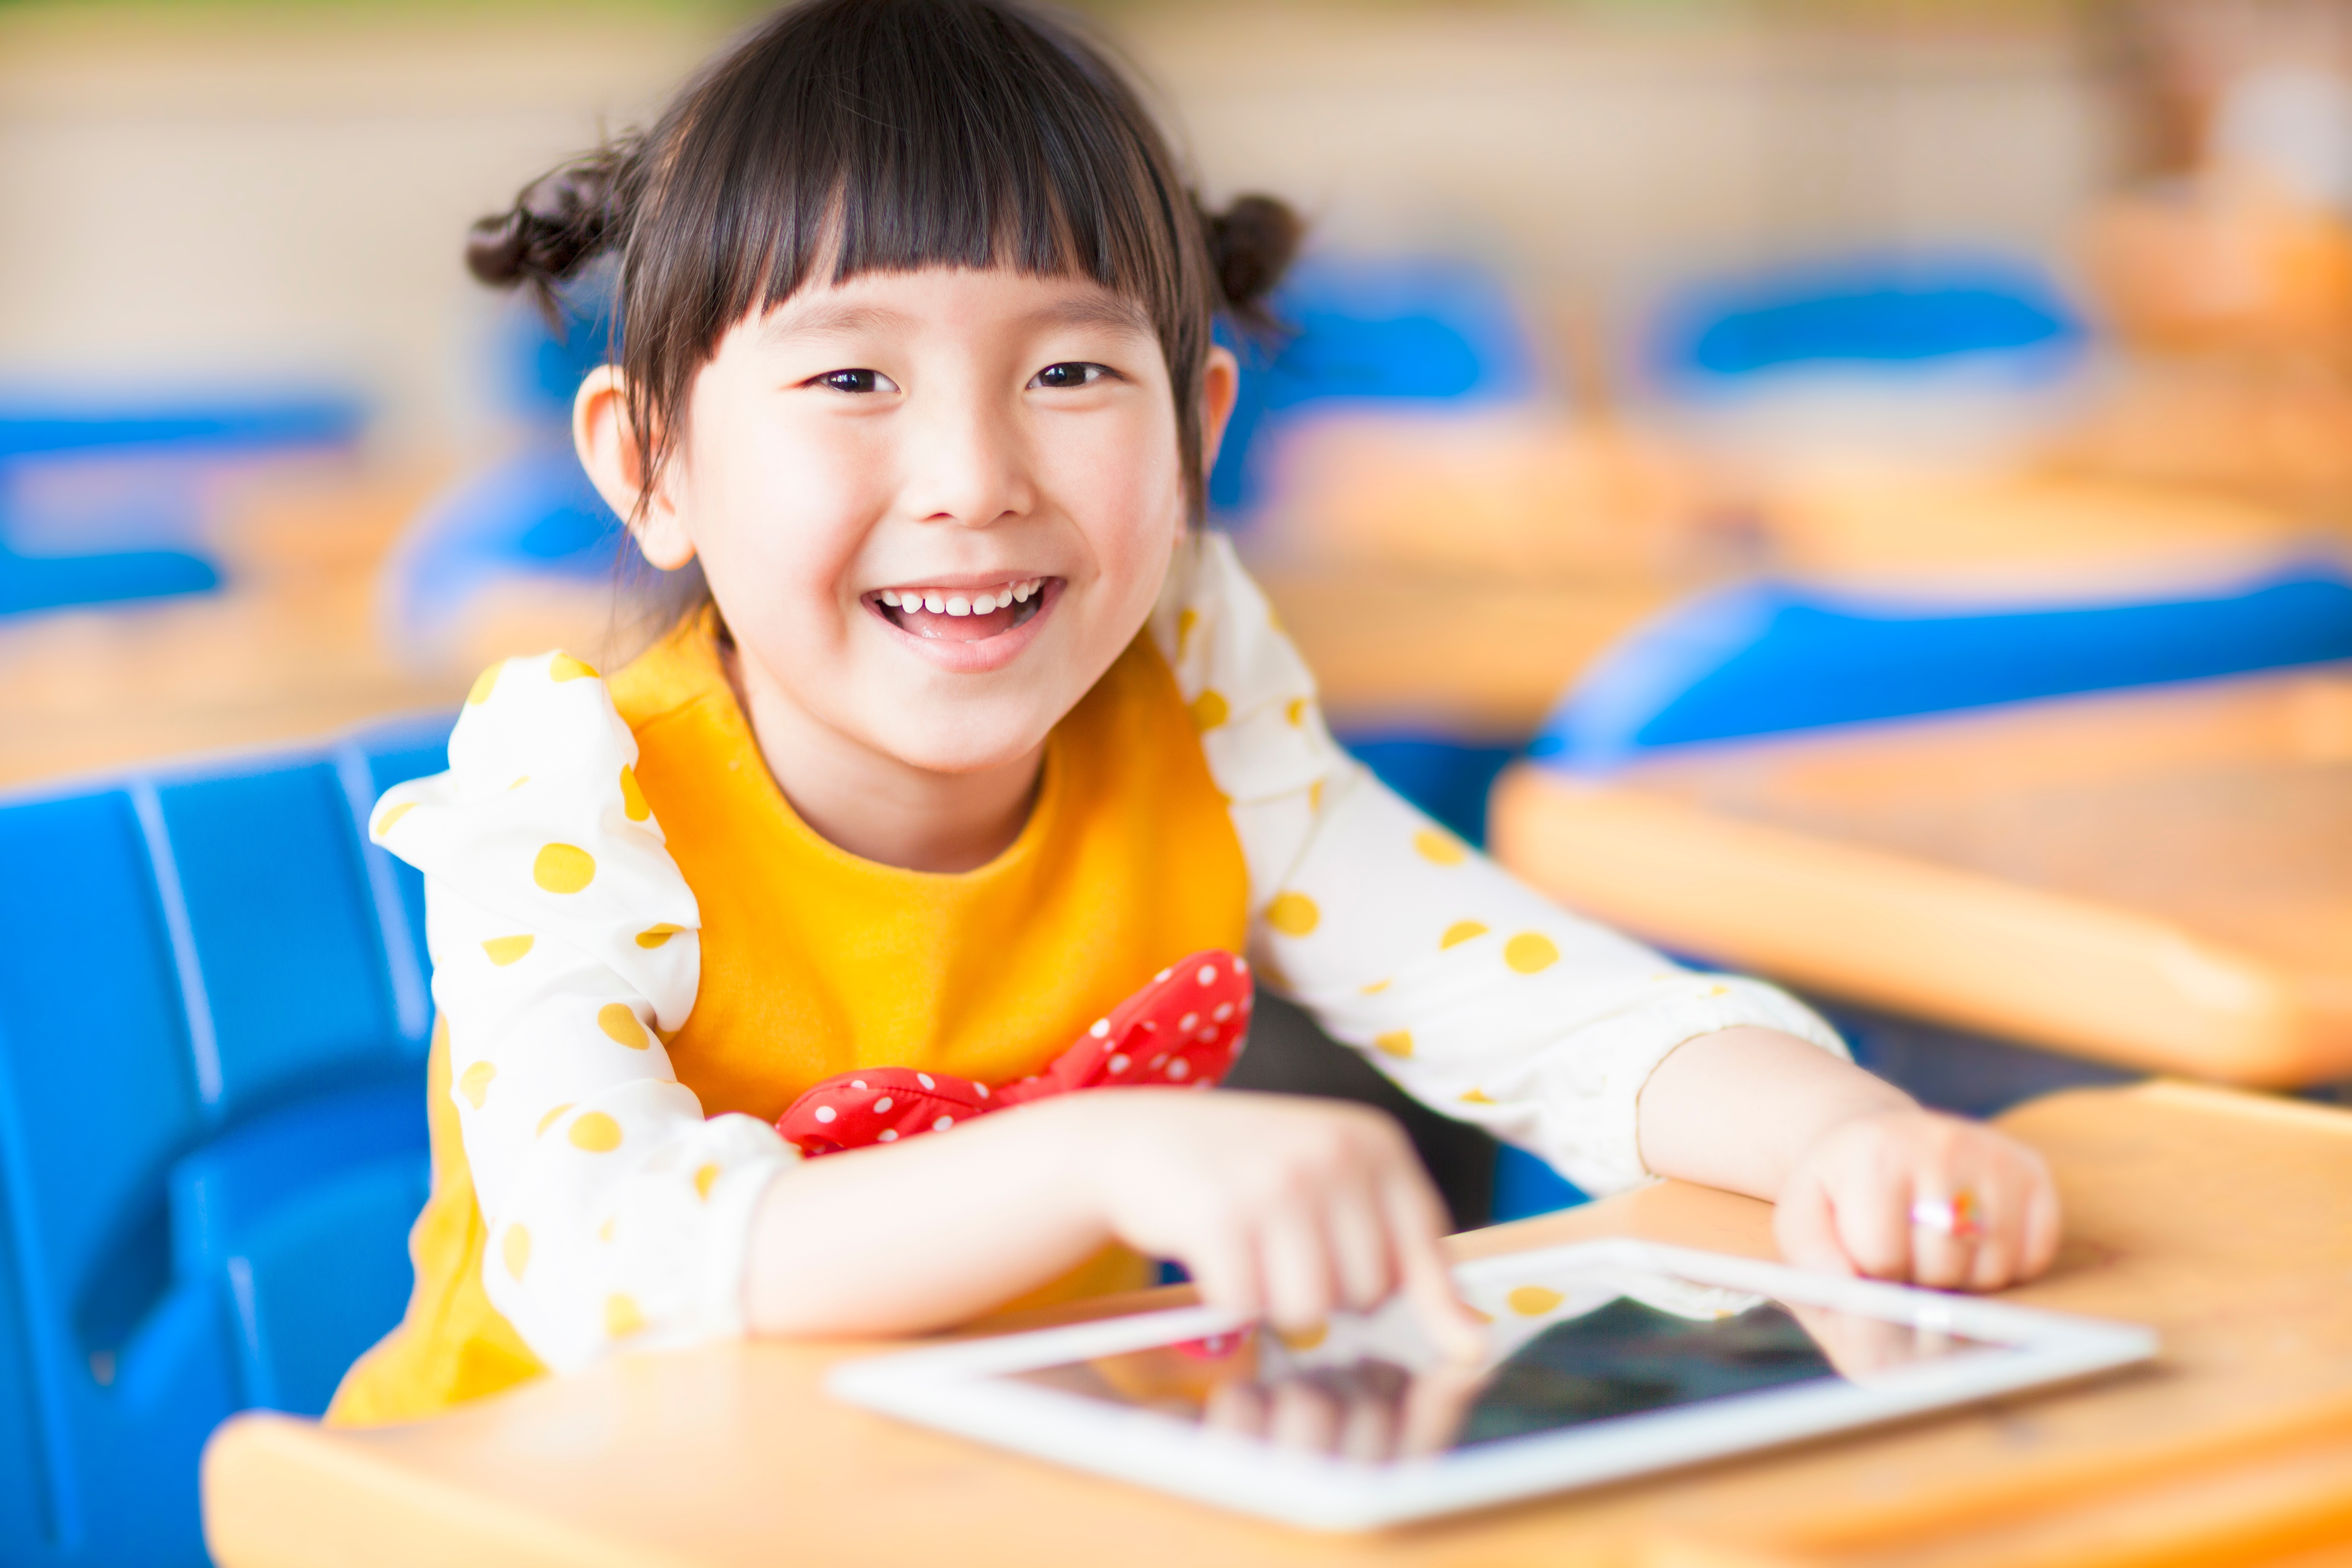 Trends in Education: What's Next for Blended Learning?